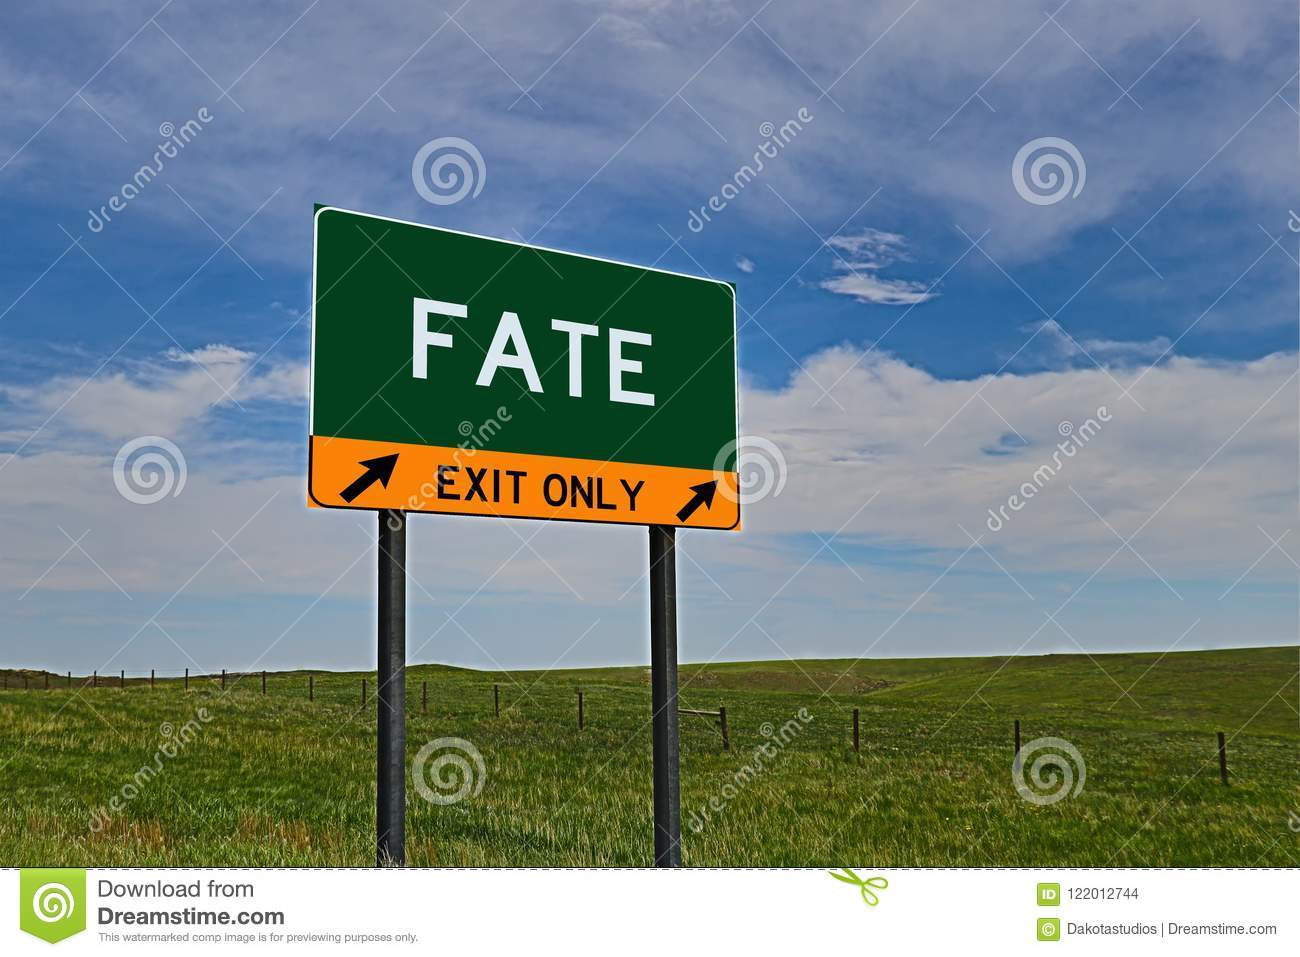 US Highway Exit Sign for Fate